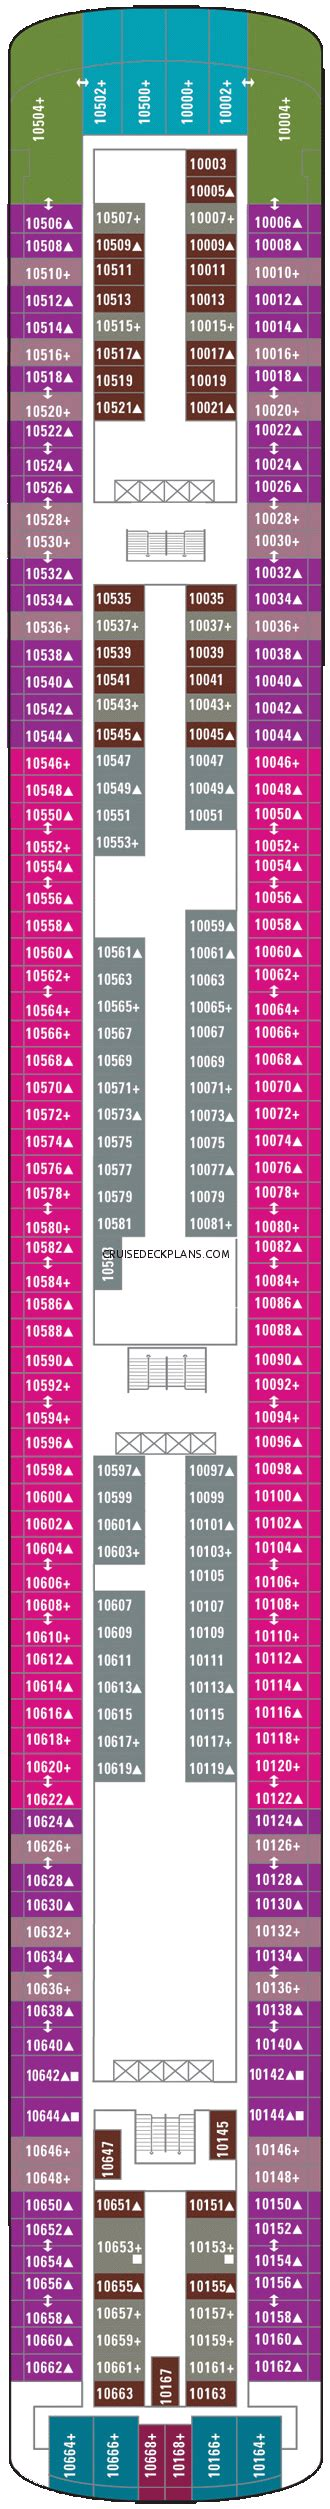 ncl pearl deck plan 10 pearl penthouse category